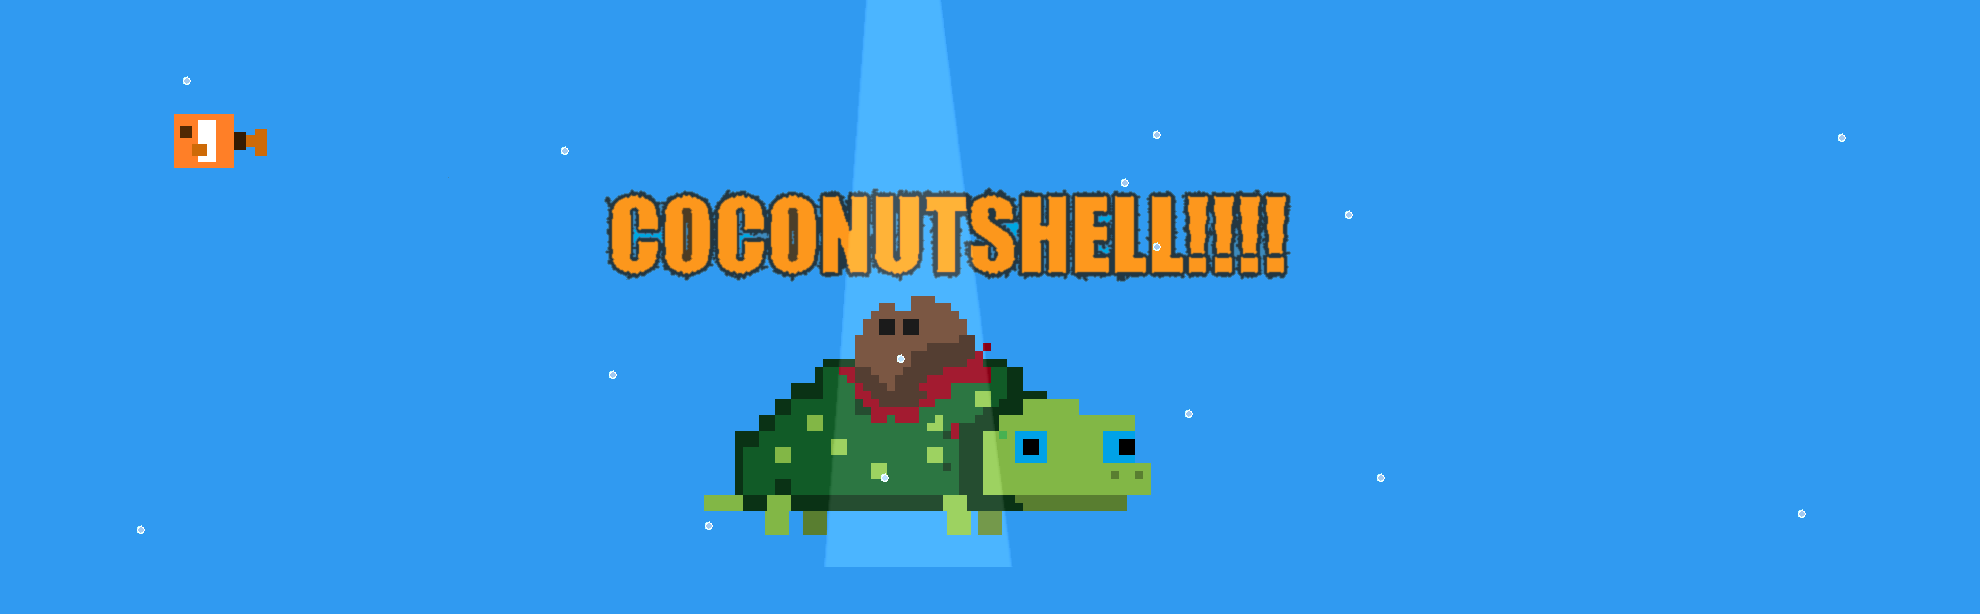 COCONUTT SHELL!!!